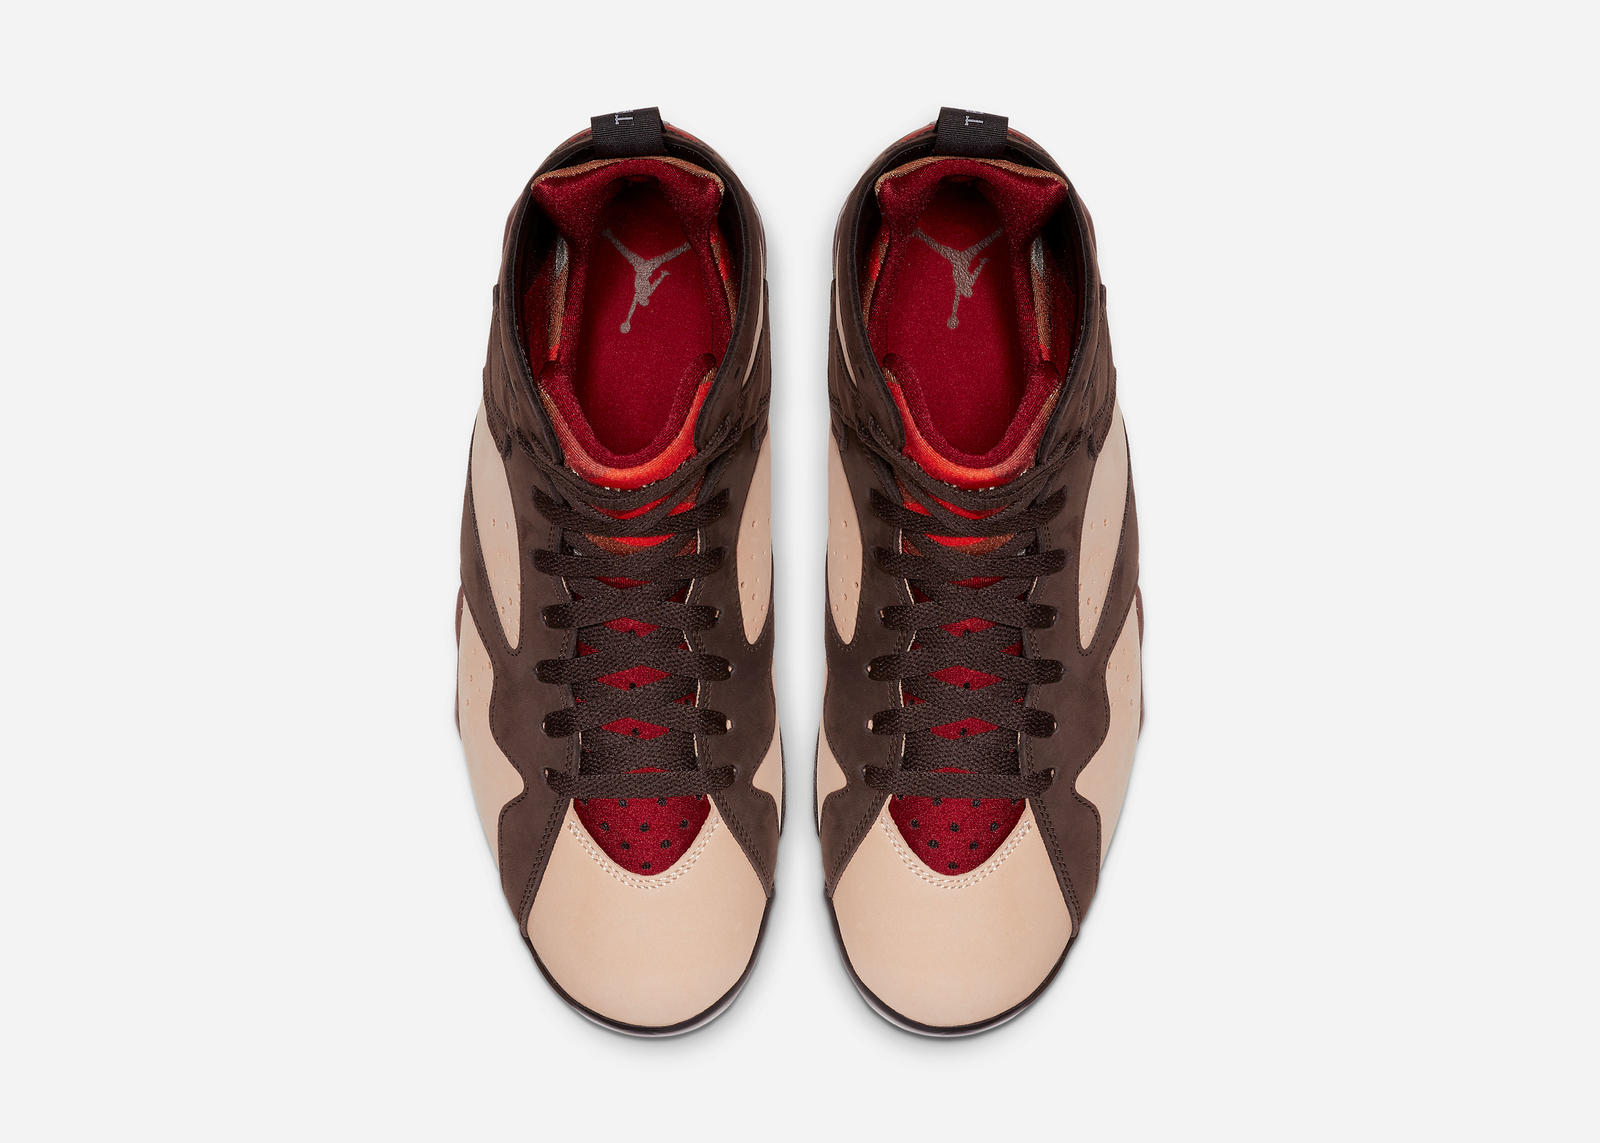 Air Jordan 7 Patta Official Images and Release Date 2